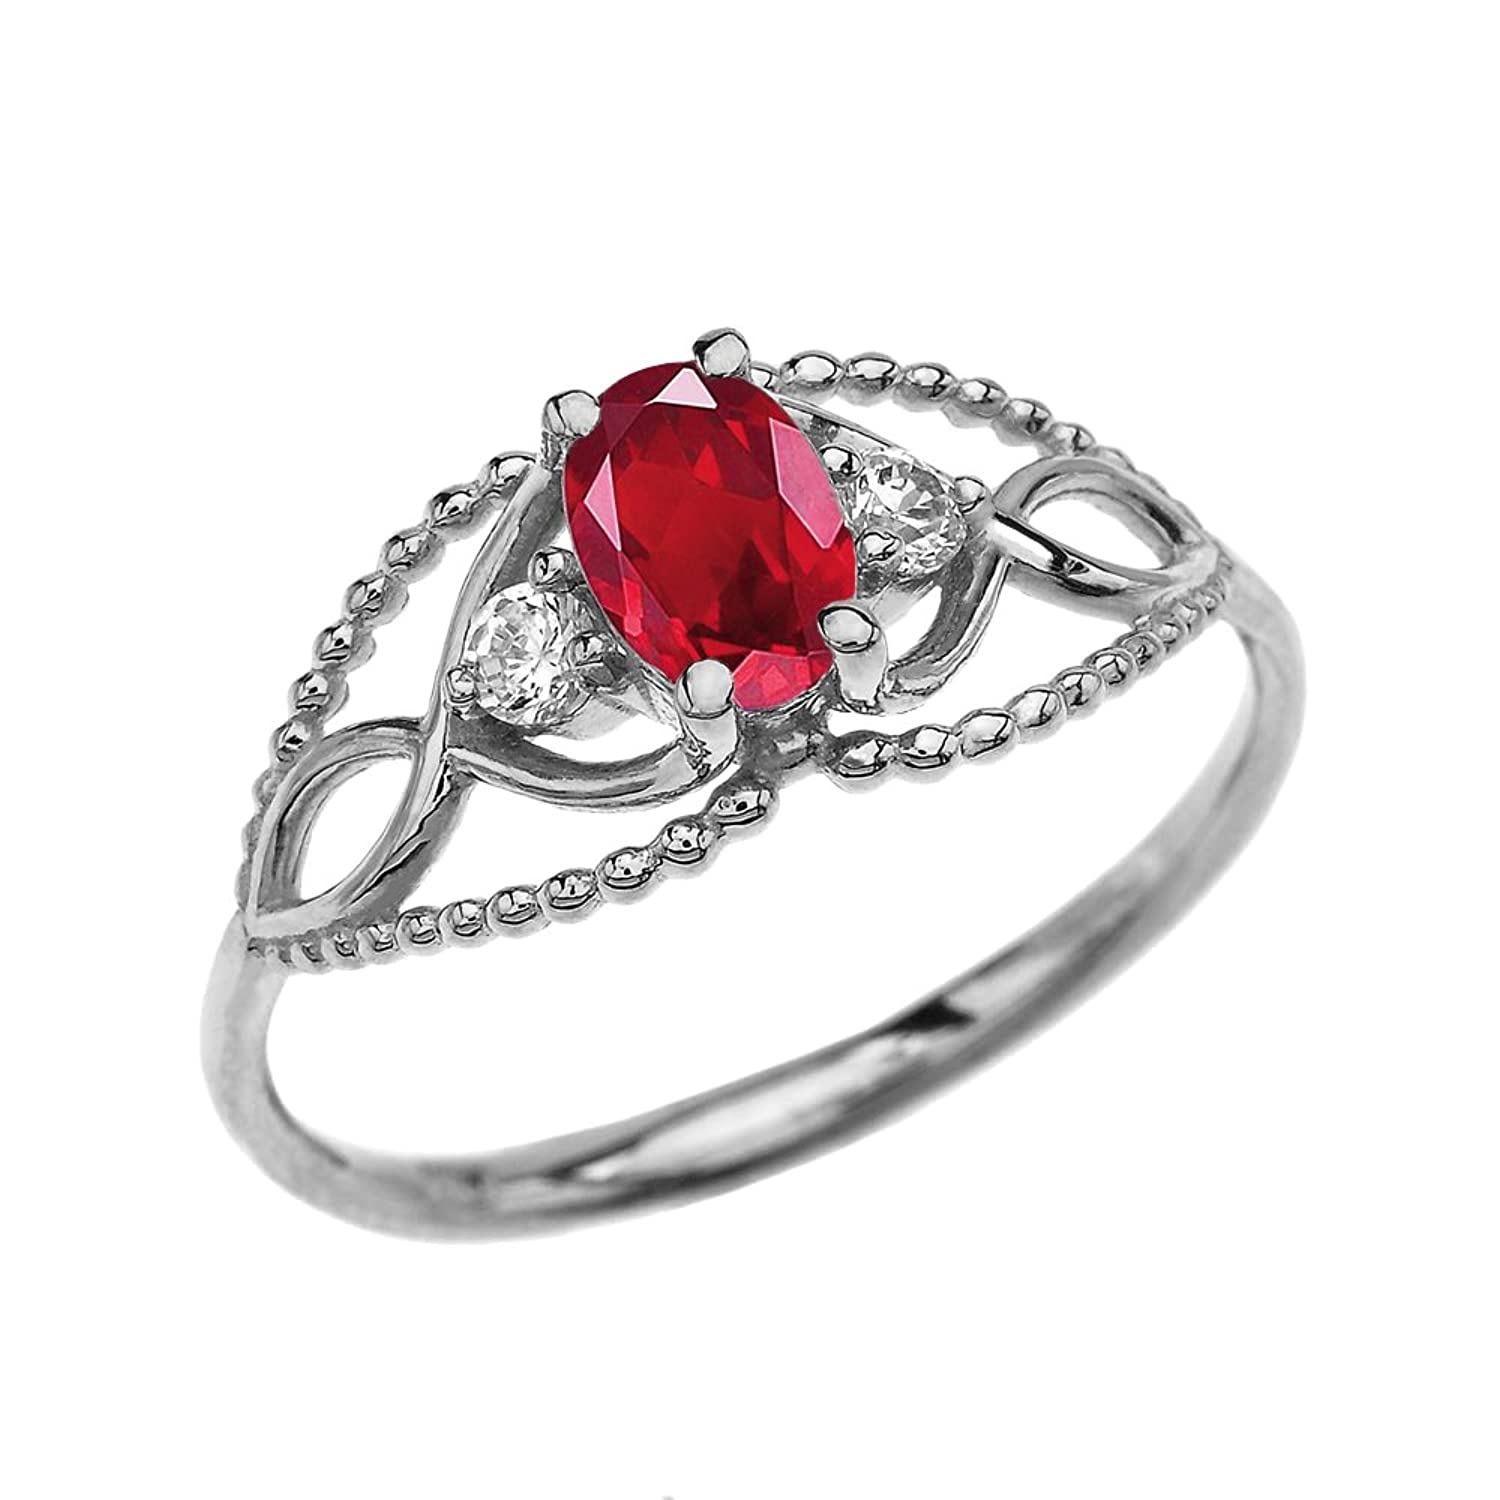 10k White Gold Elegant Beaded Solitaire Ring With Ruby and White Topaz